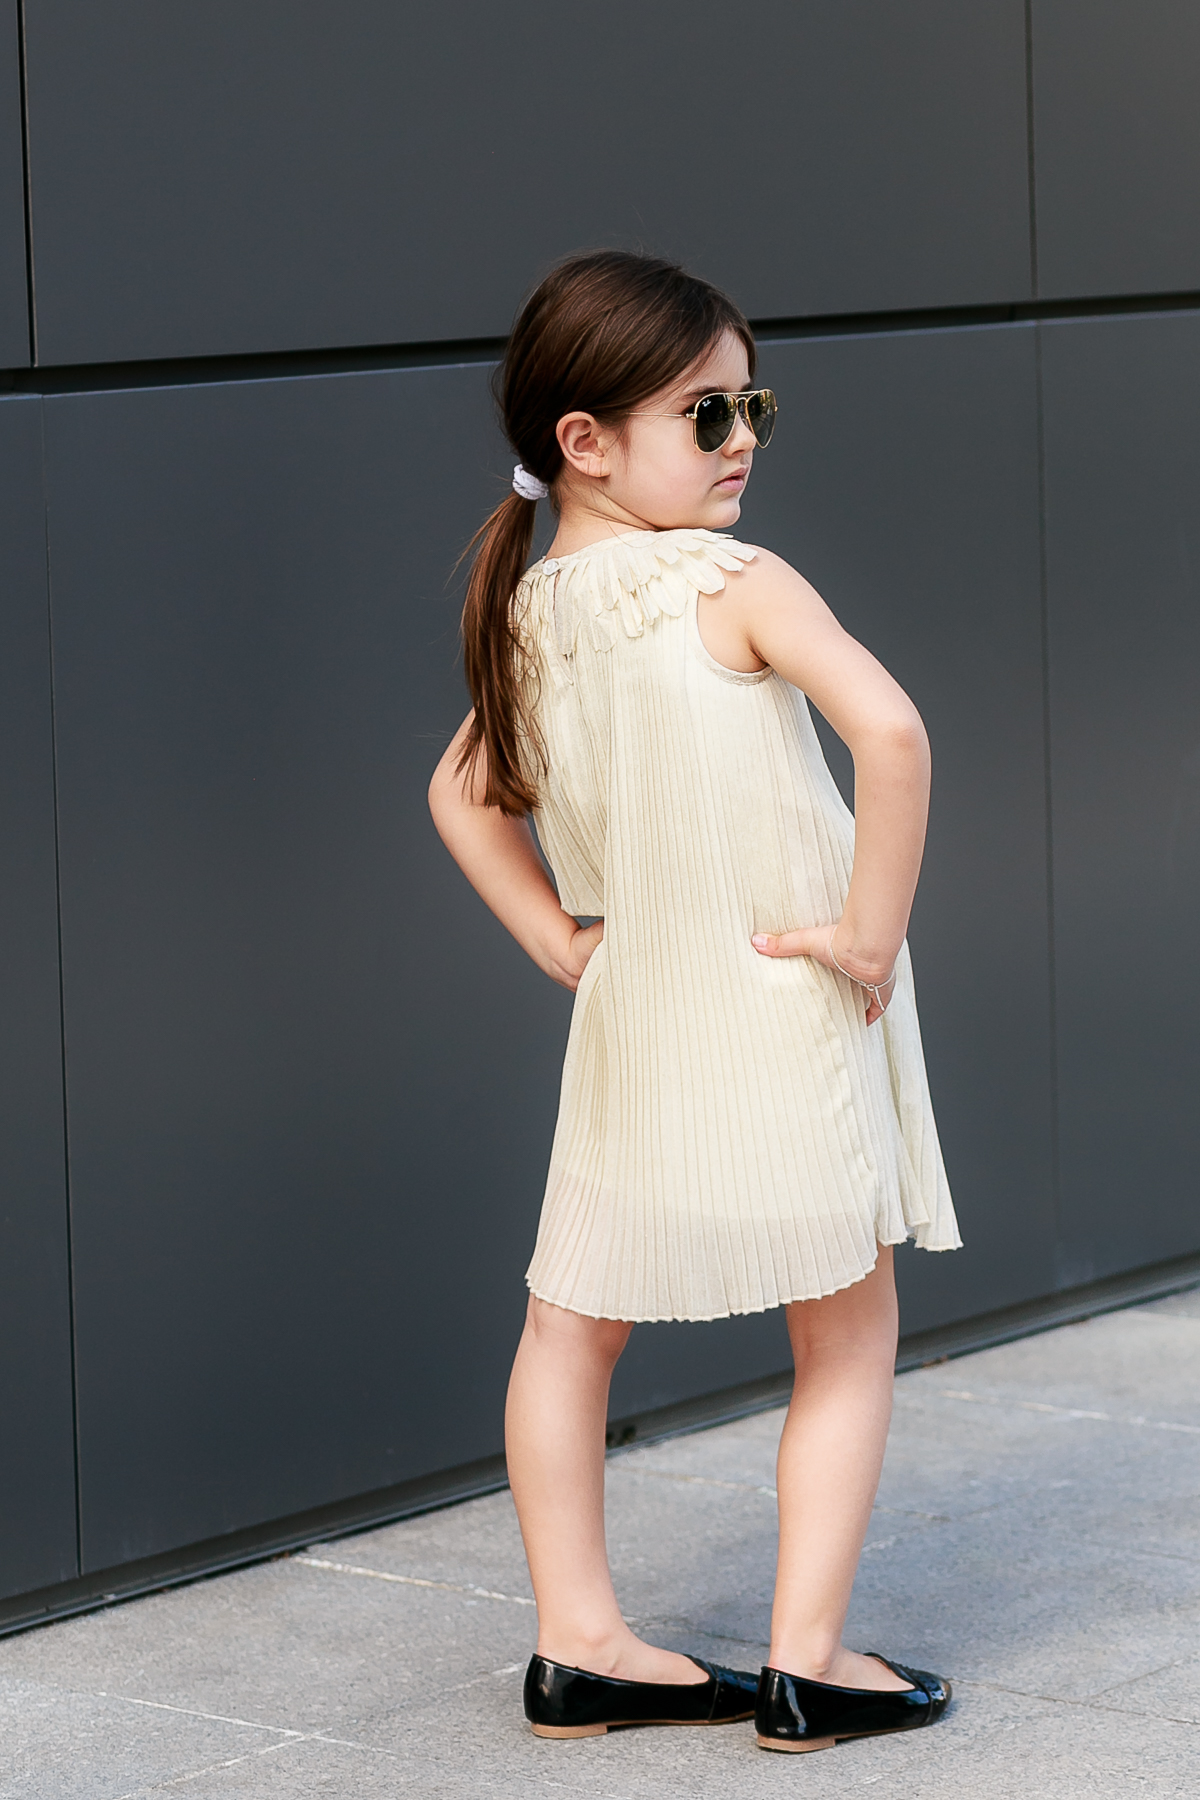 Kids Style Chloe Girl Look Street Style Outfit by Miss Kaira | EdgyCuts